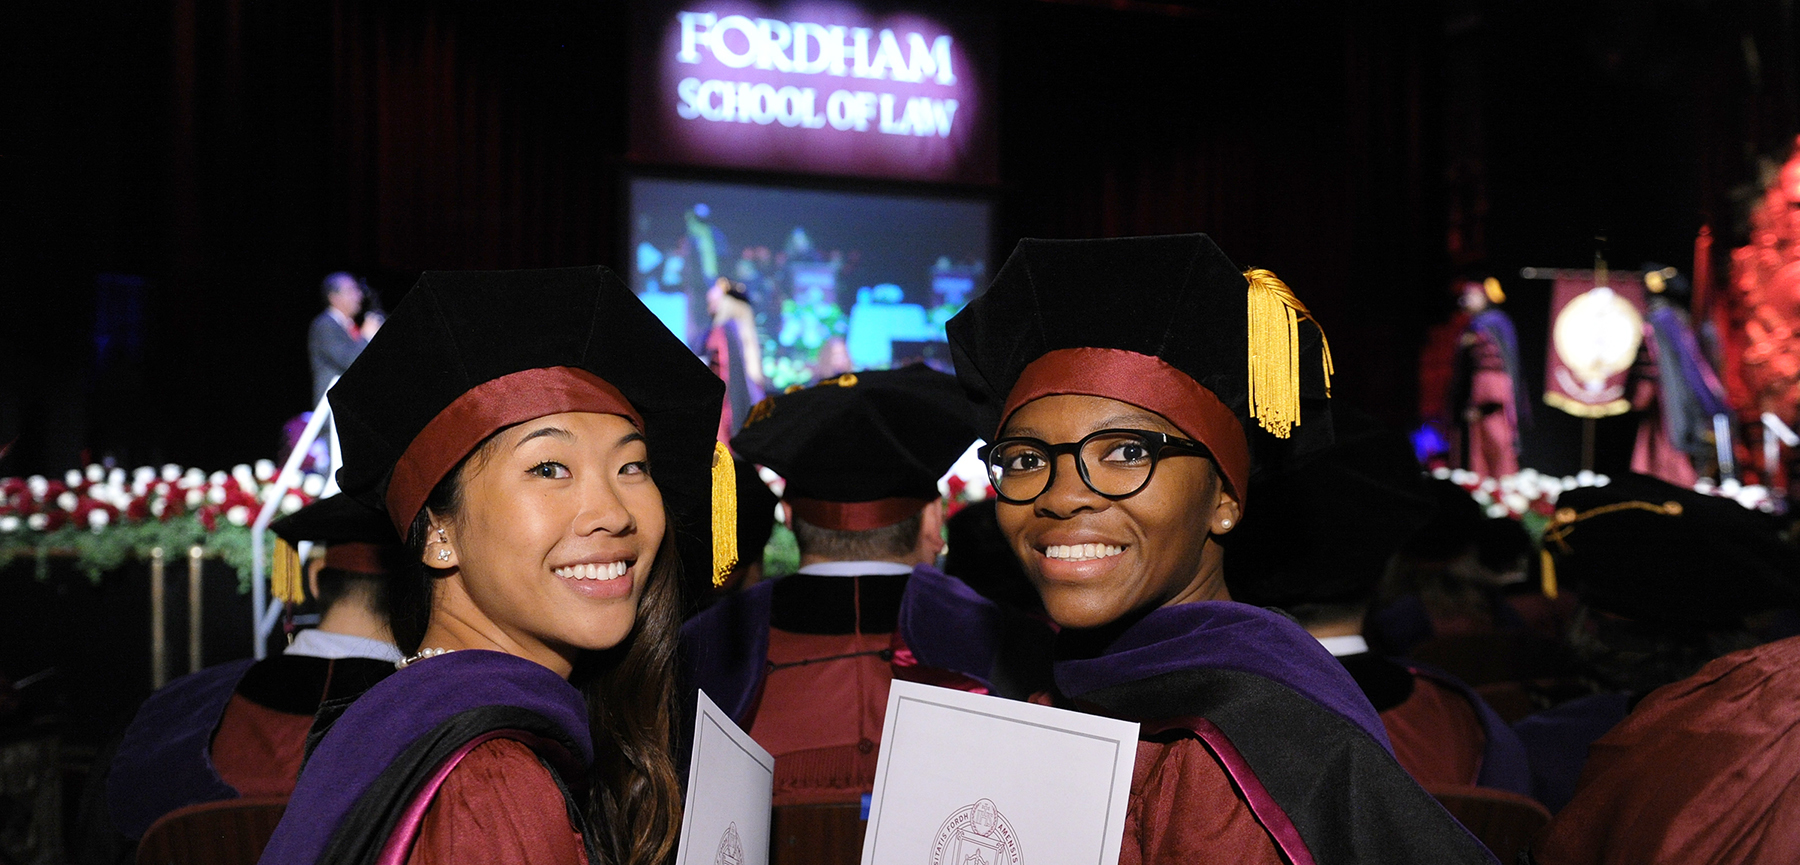 Fordham Law School graduates